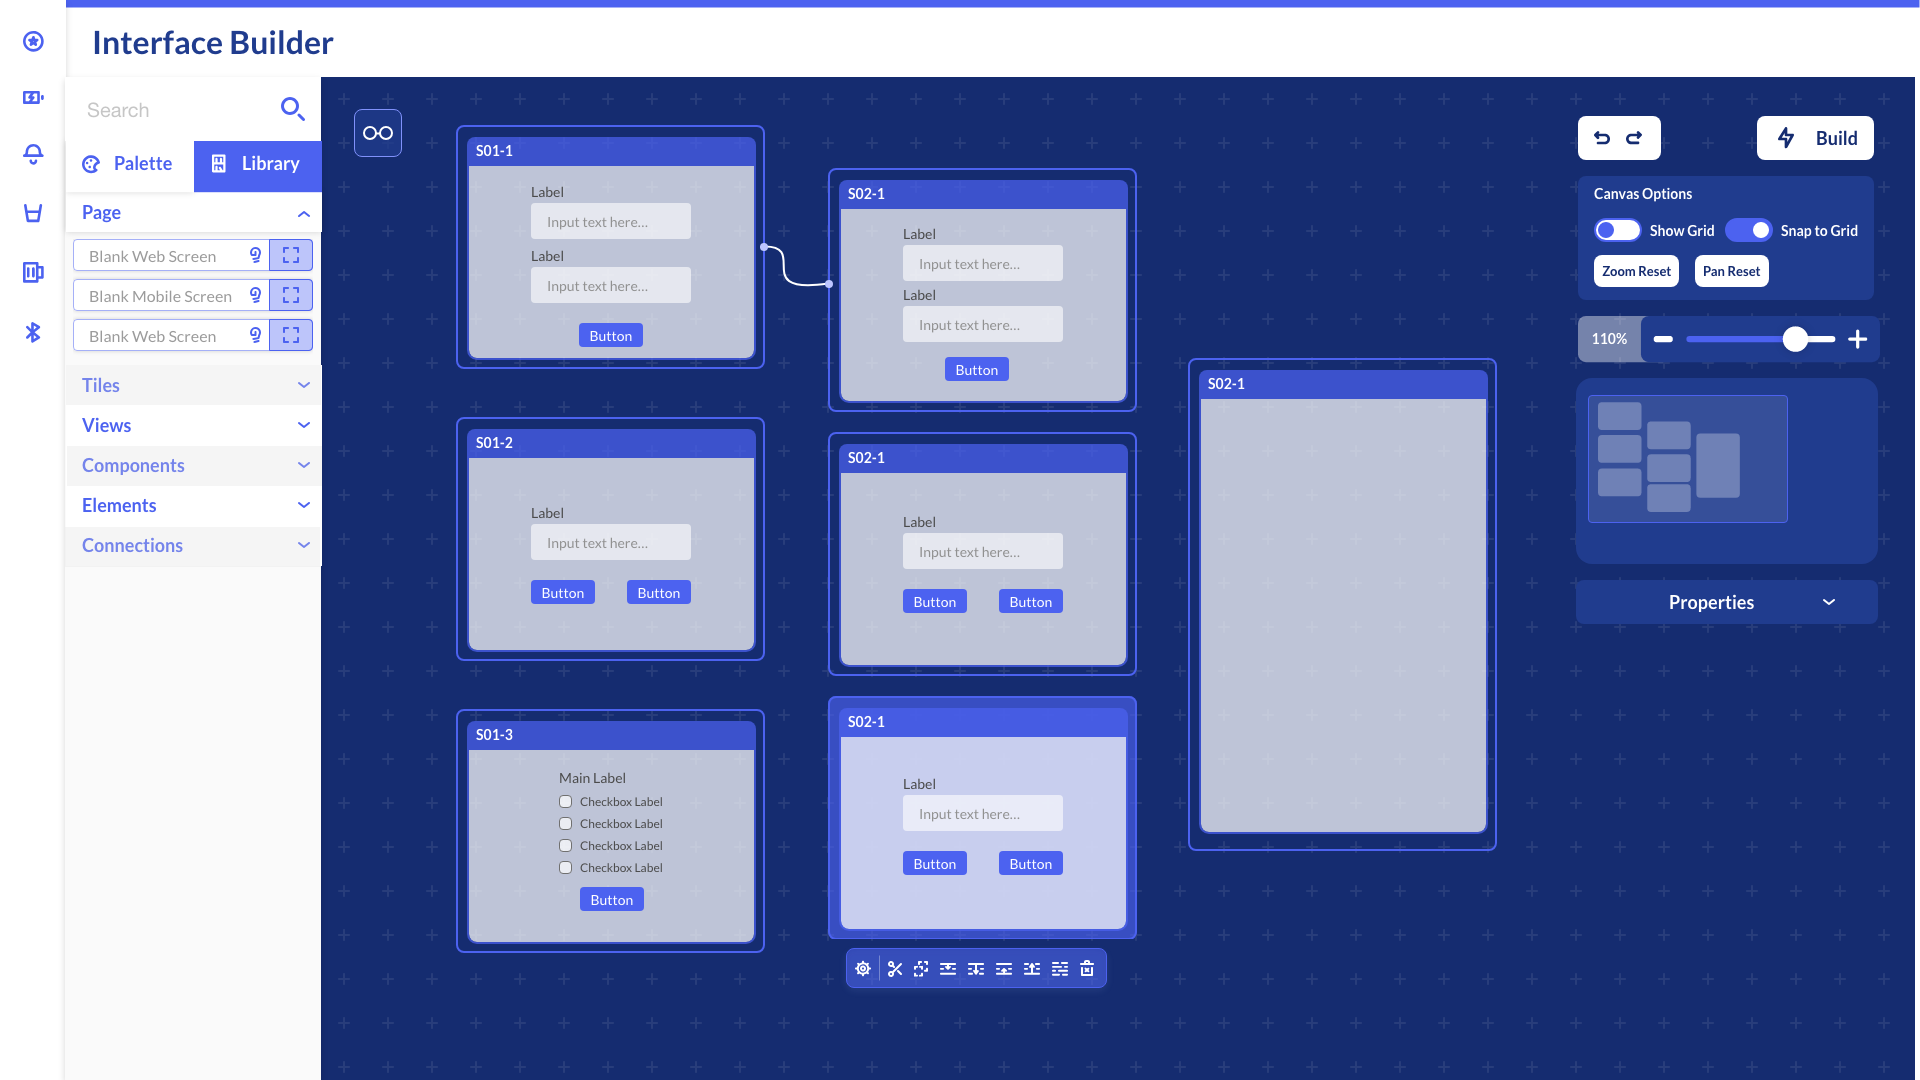 An Iteration of the Interface Builder Design